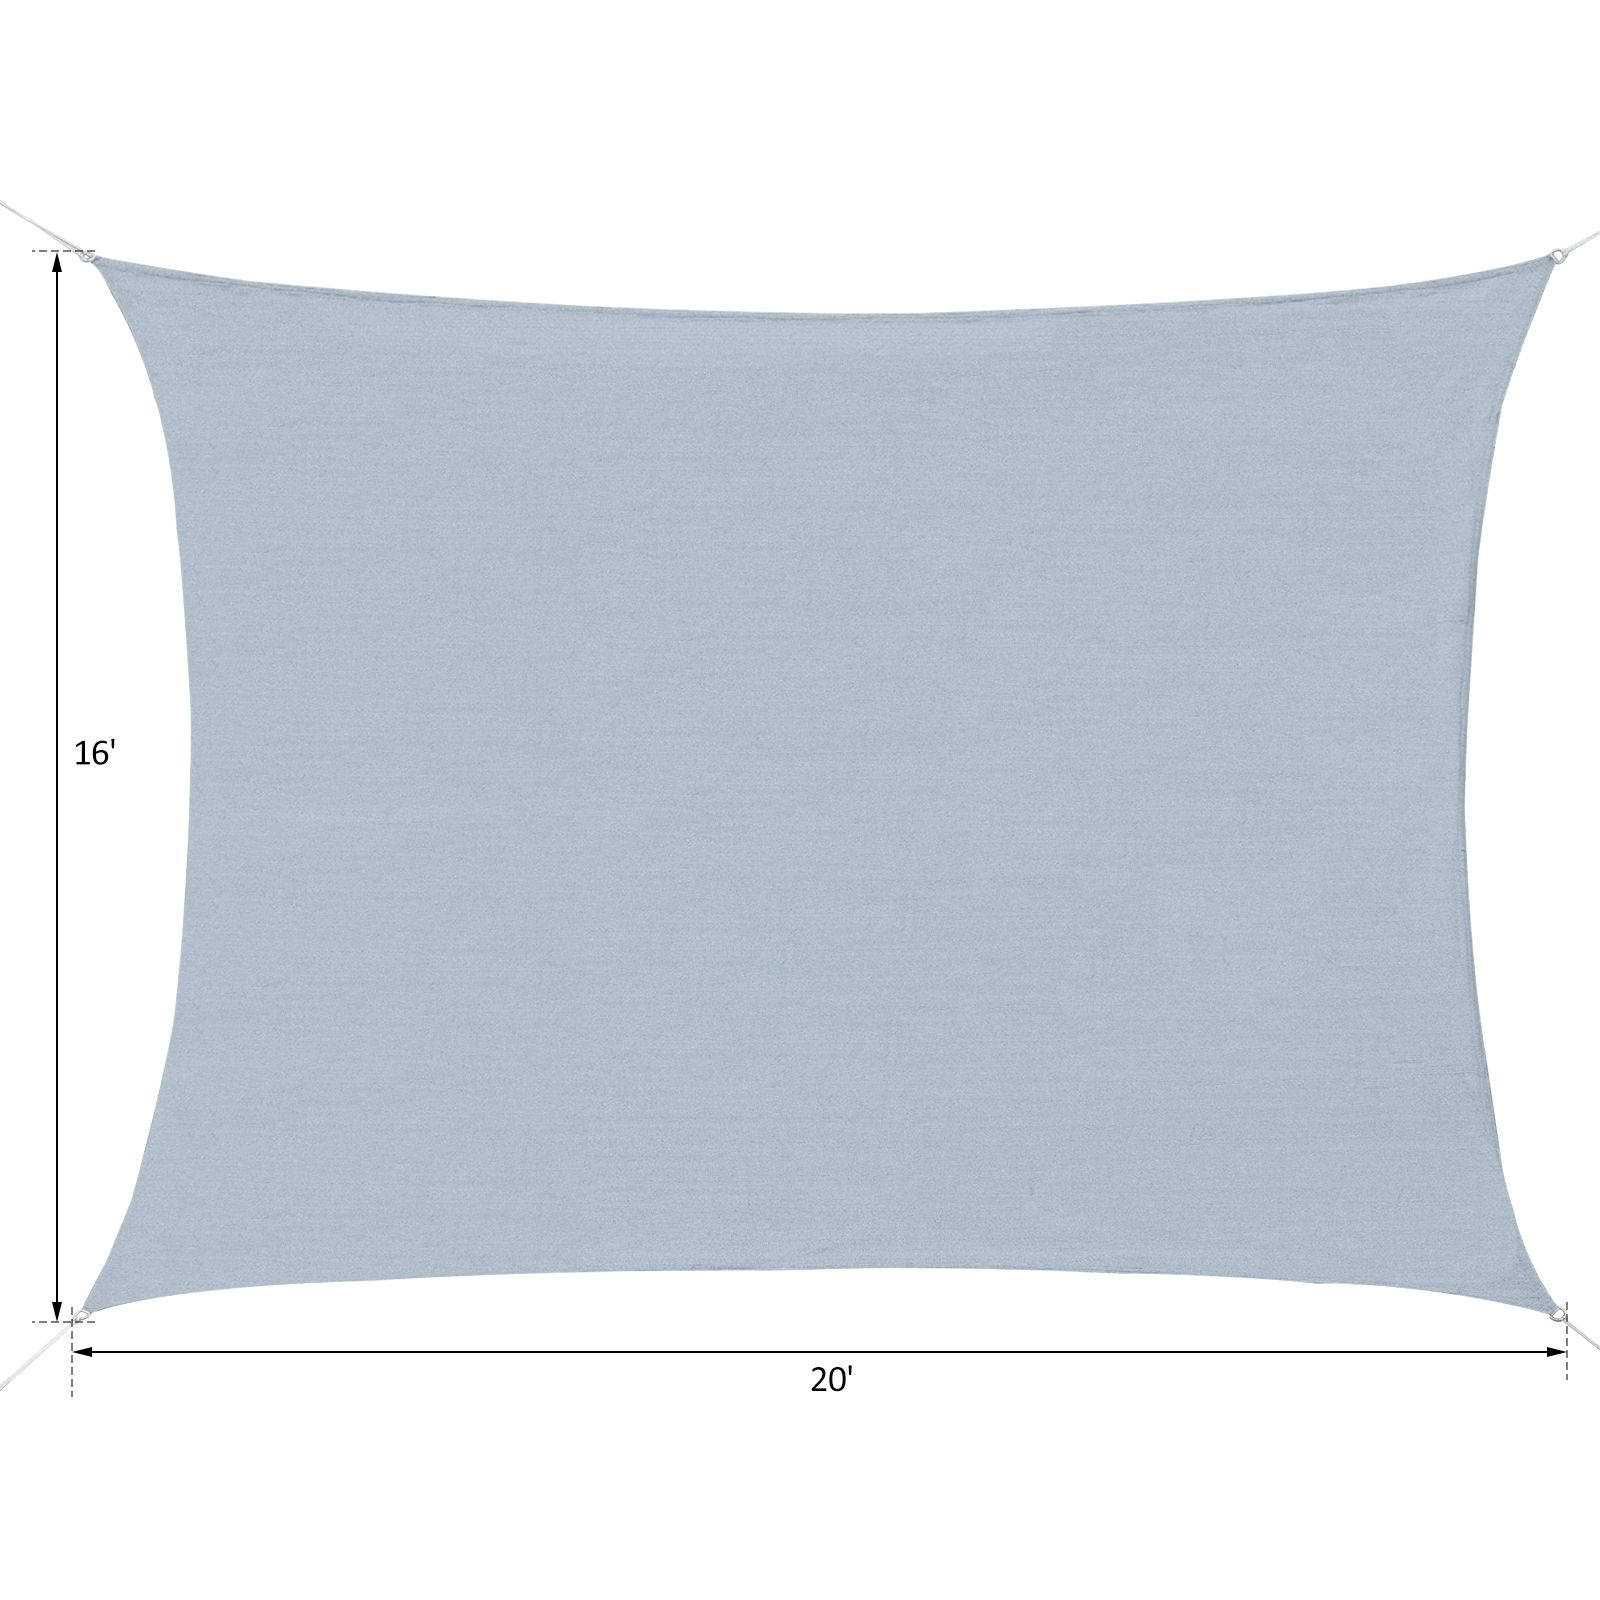 Sun-Shade-Sail-UV-Top-Cover-Outdoor-Canopy-Patio-Triangle-Square-Rectangle-w-Bag thumbnail 4